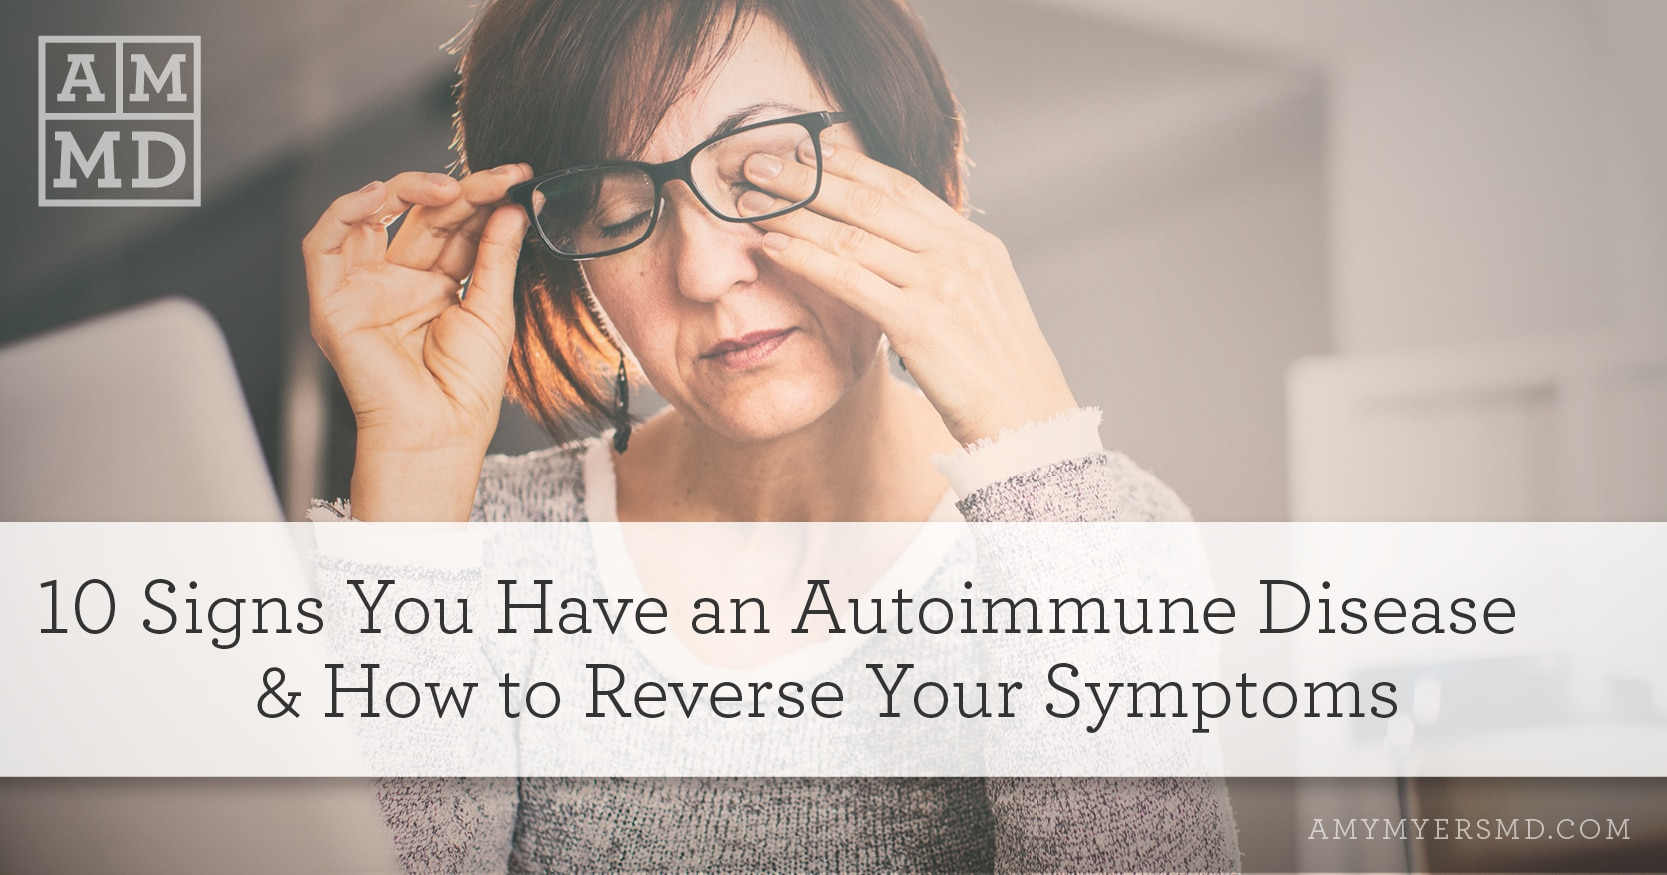 Signs You Have an Autoimmune Disease and How to Reverse Your Symptoms - Woman Rubbing Her Eyes - Amy Myers MD